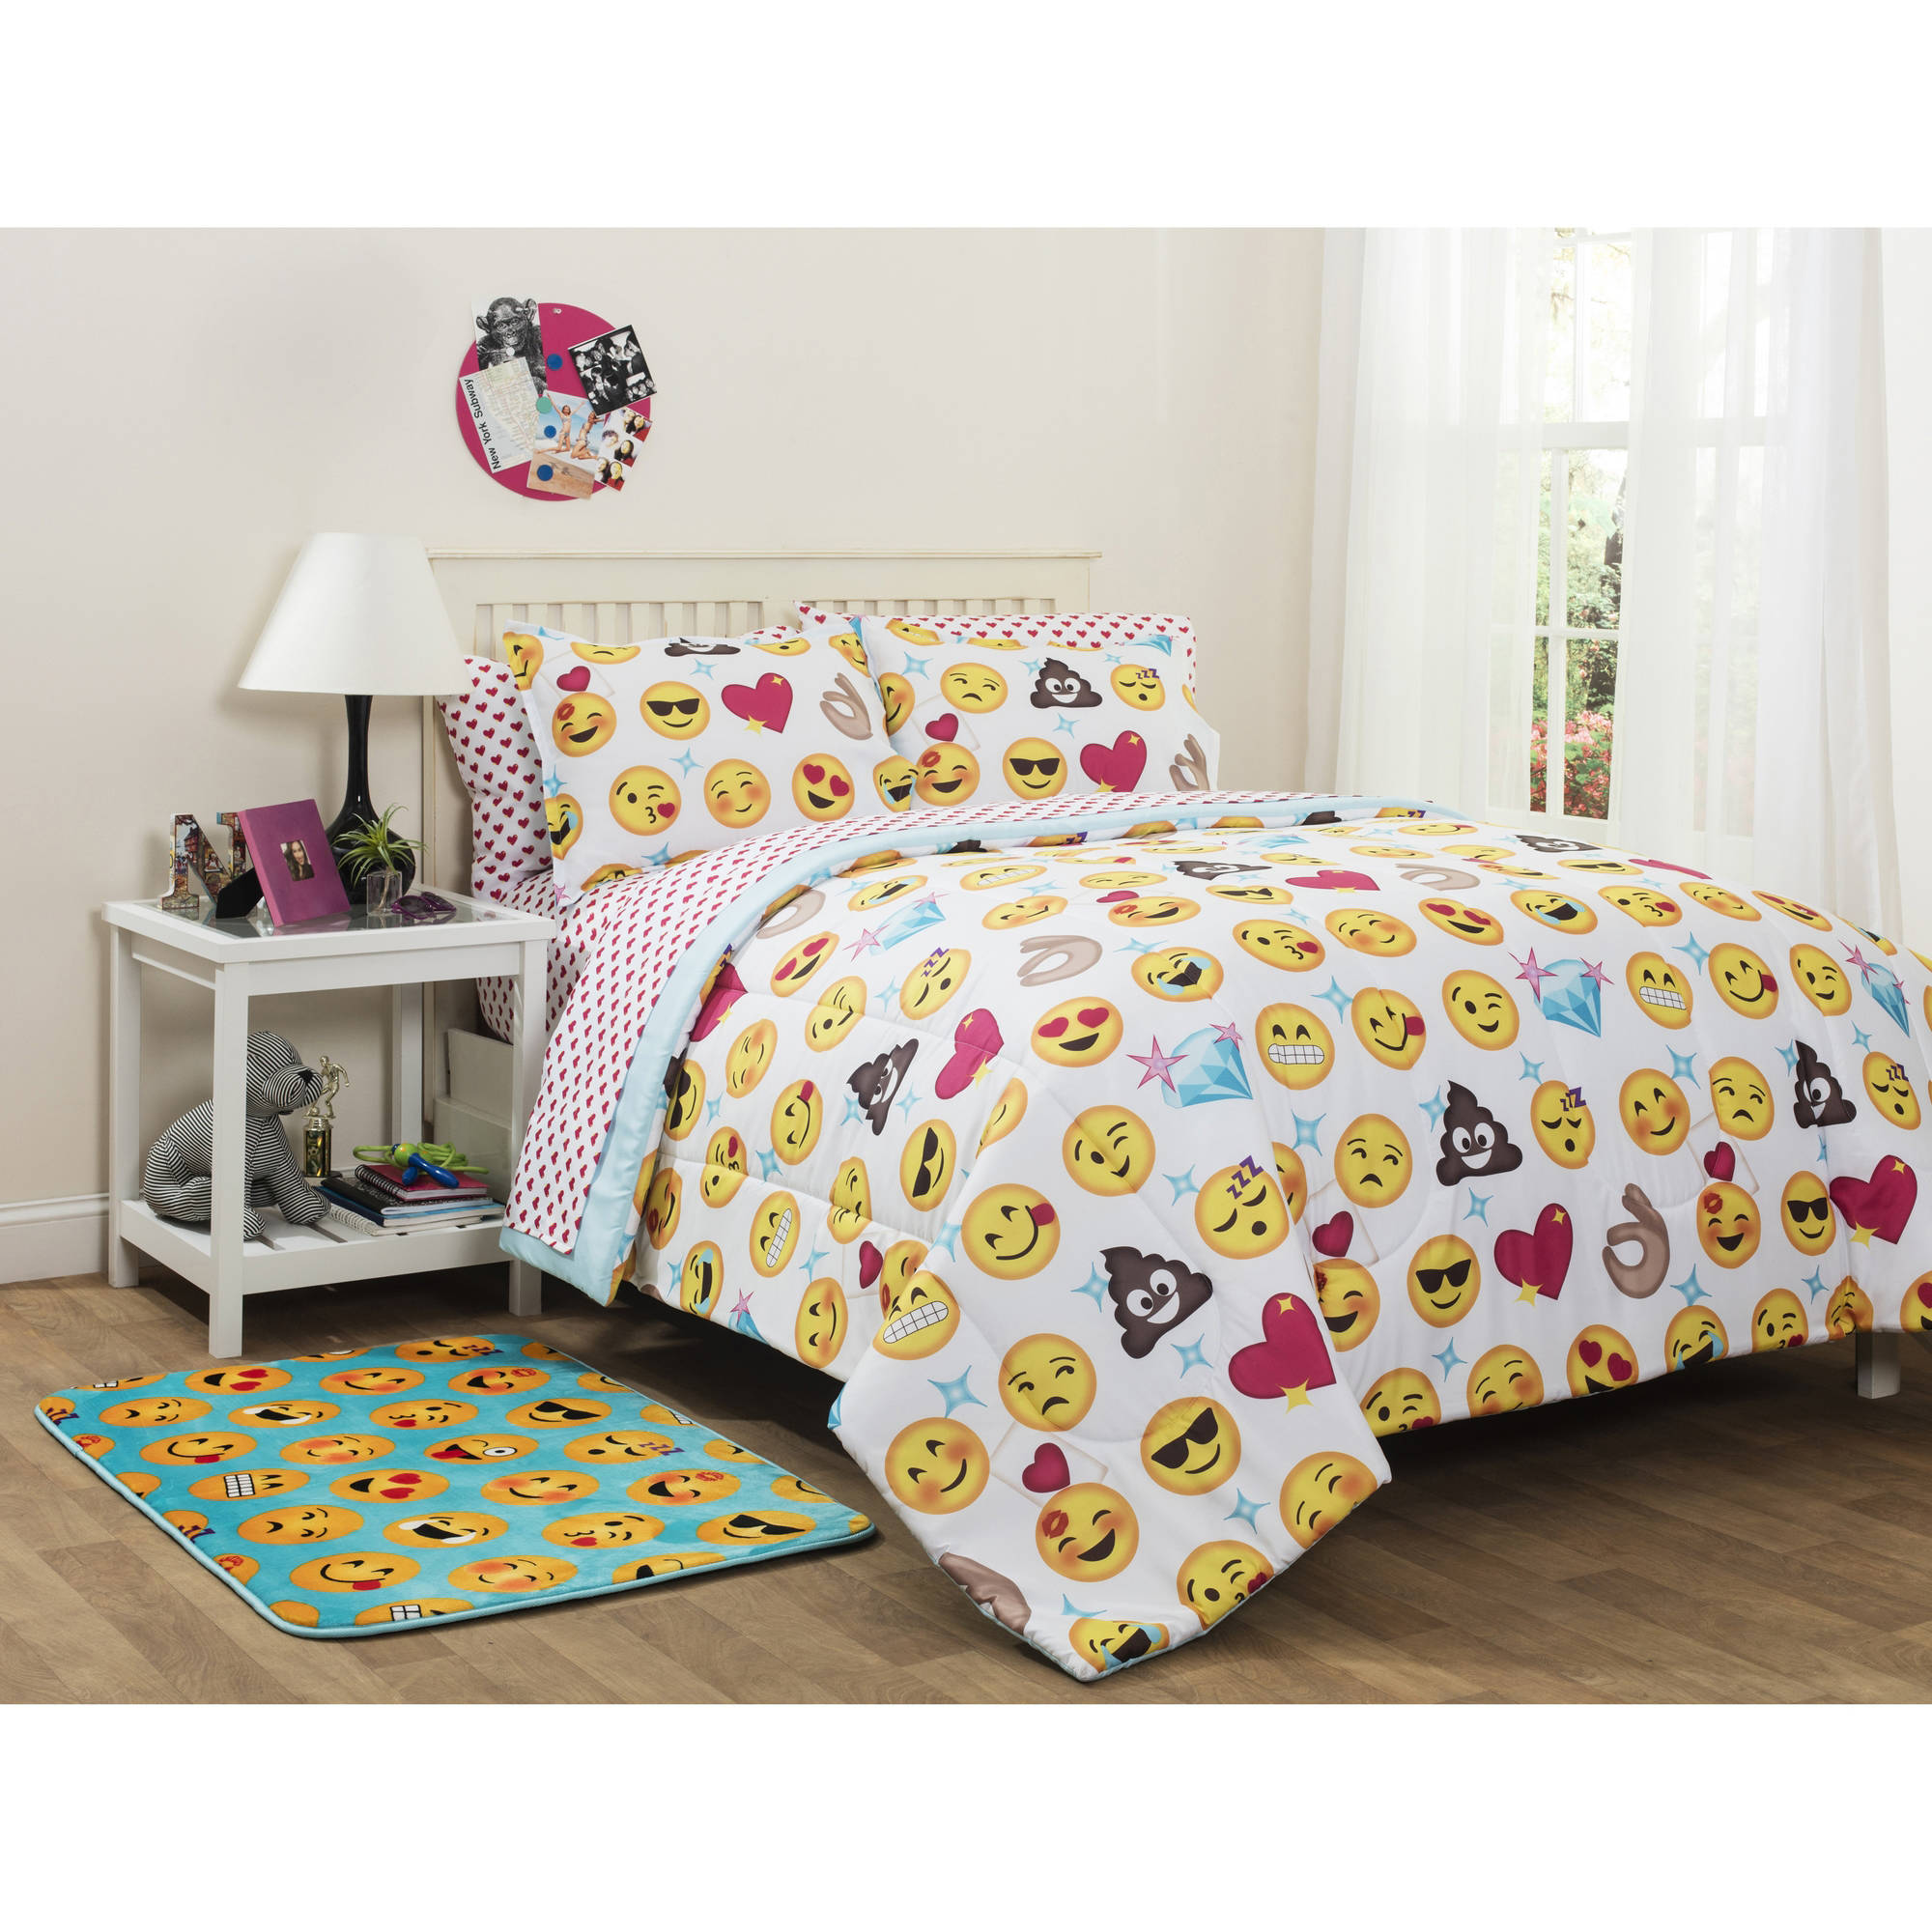 Emoji pals bed in a bag bedding set walmart com